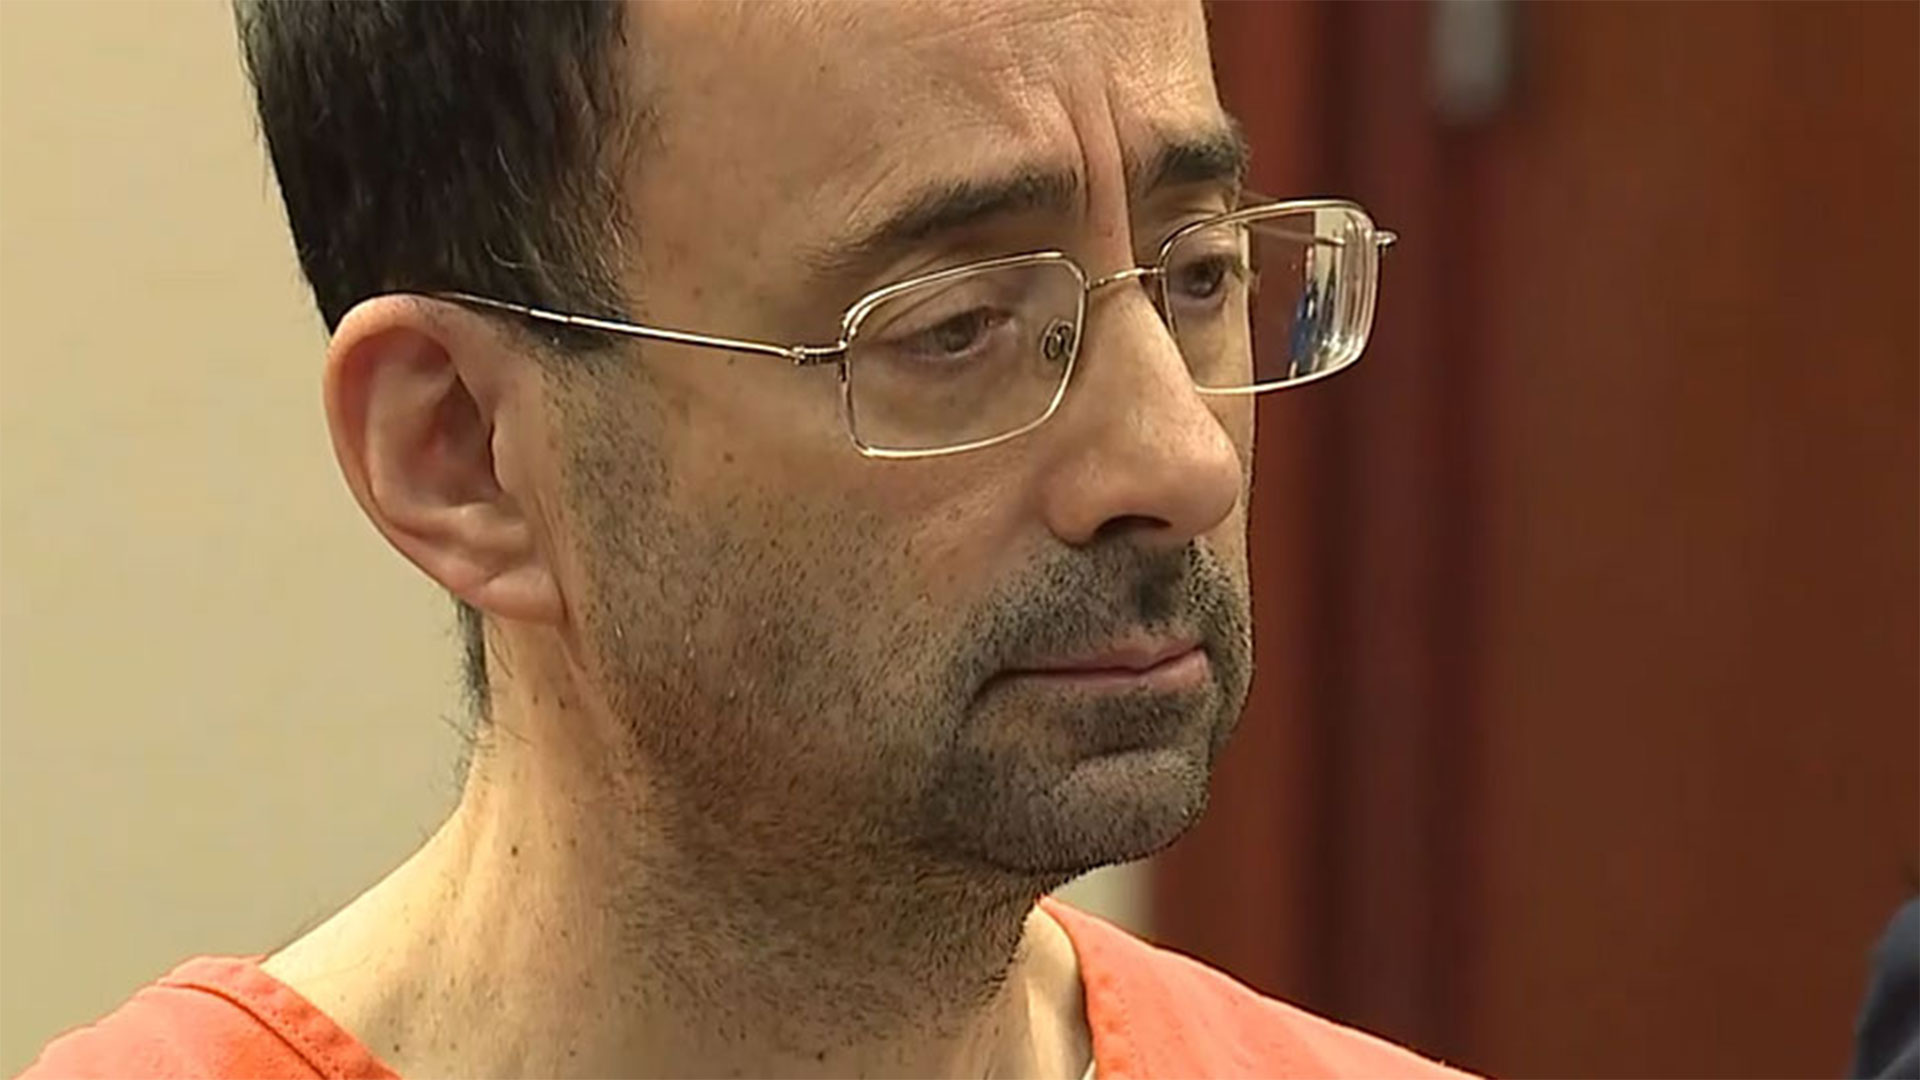 KELO Larry Nassar doctor sexual abuse